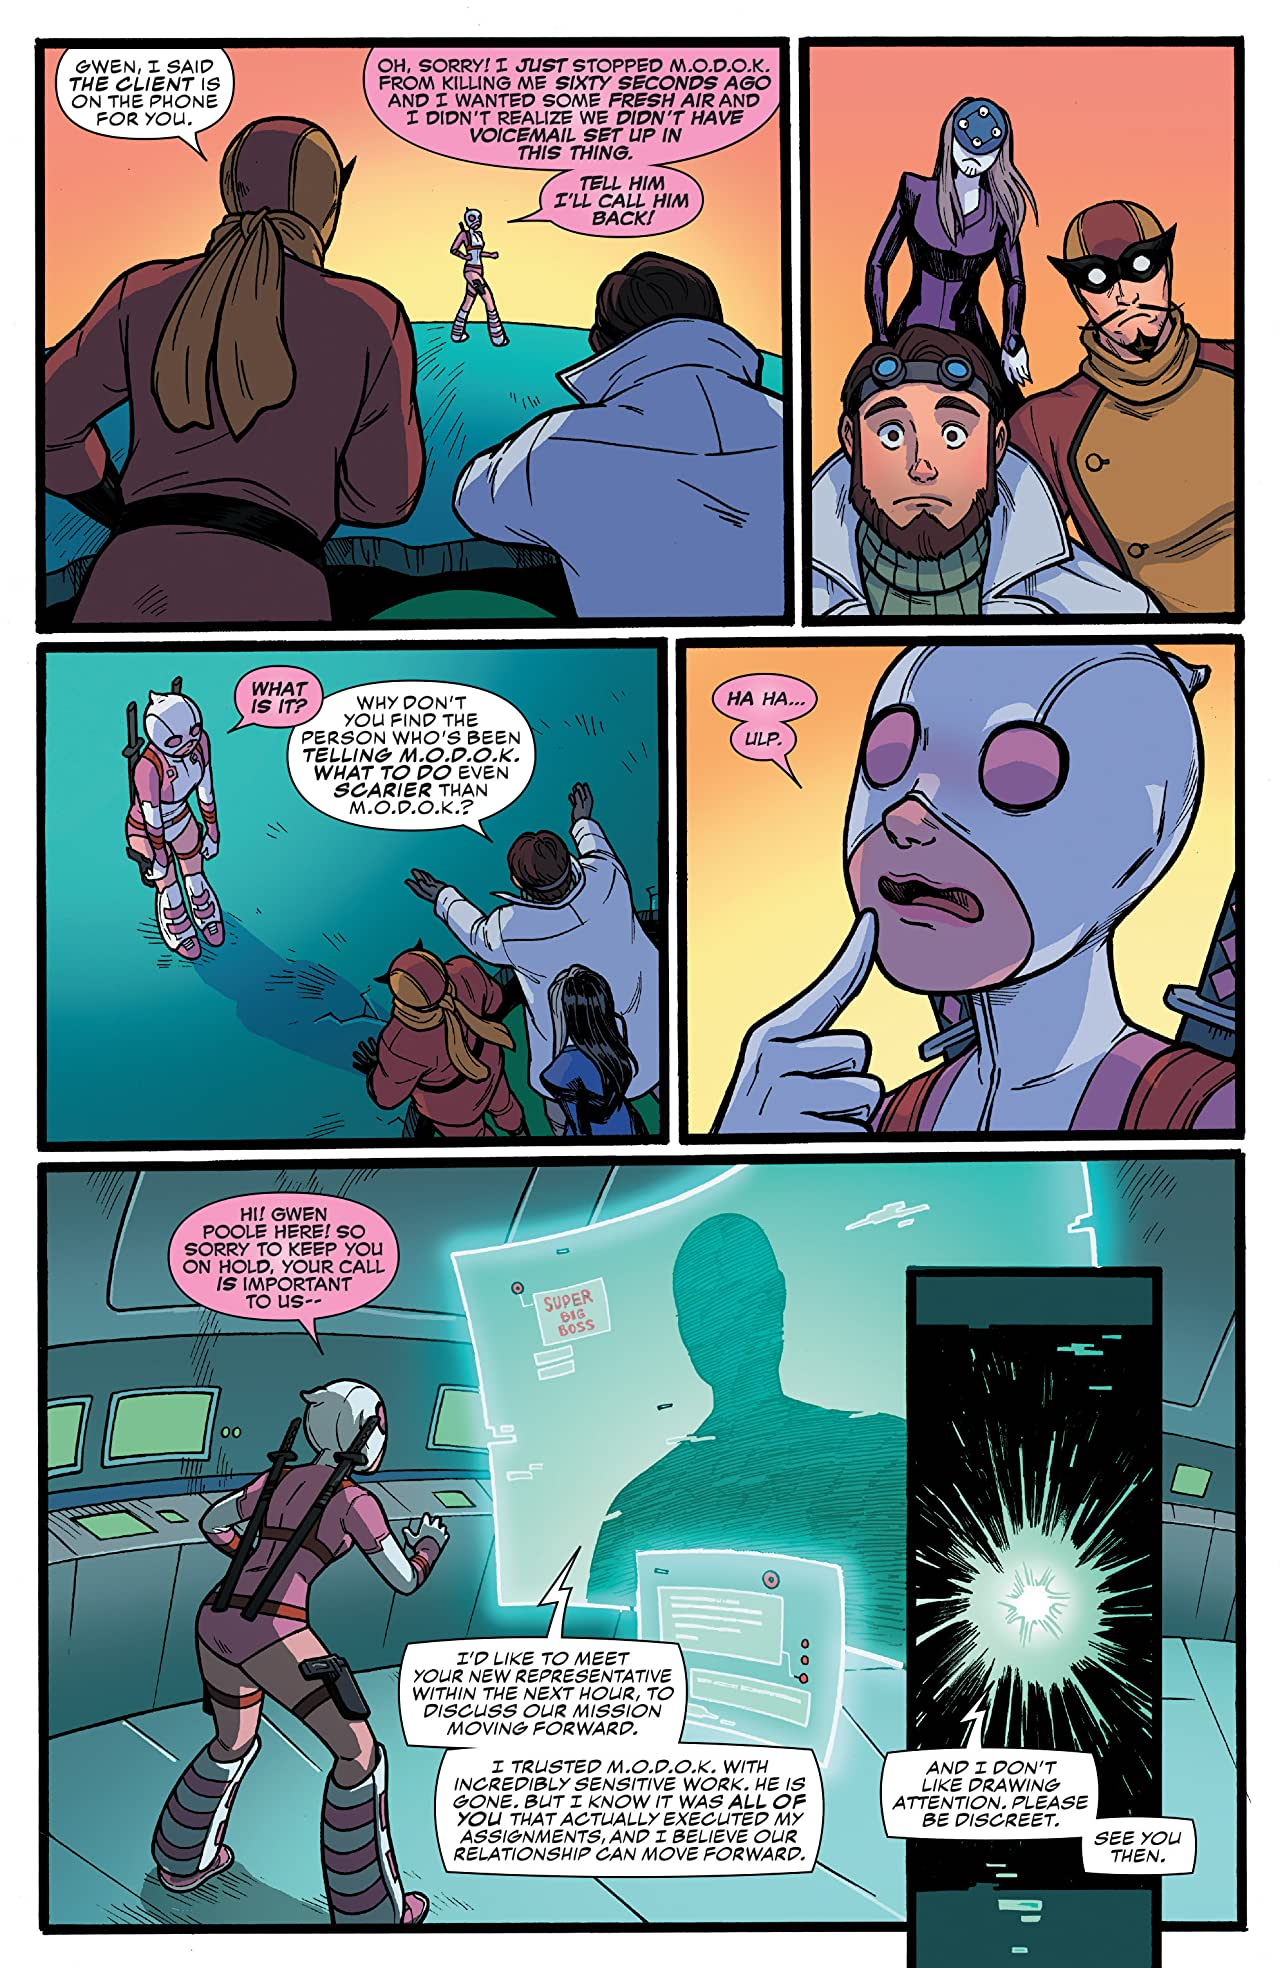 Gwenpool, The Unbelievable Vol. 2: Head of M.O.D.O.K.